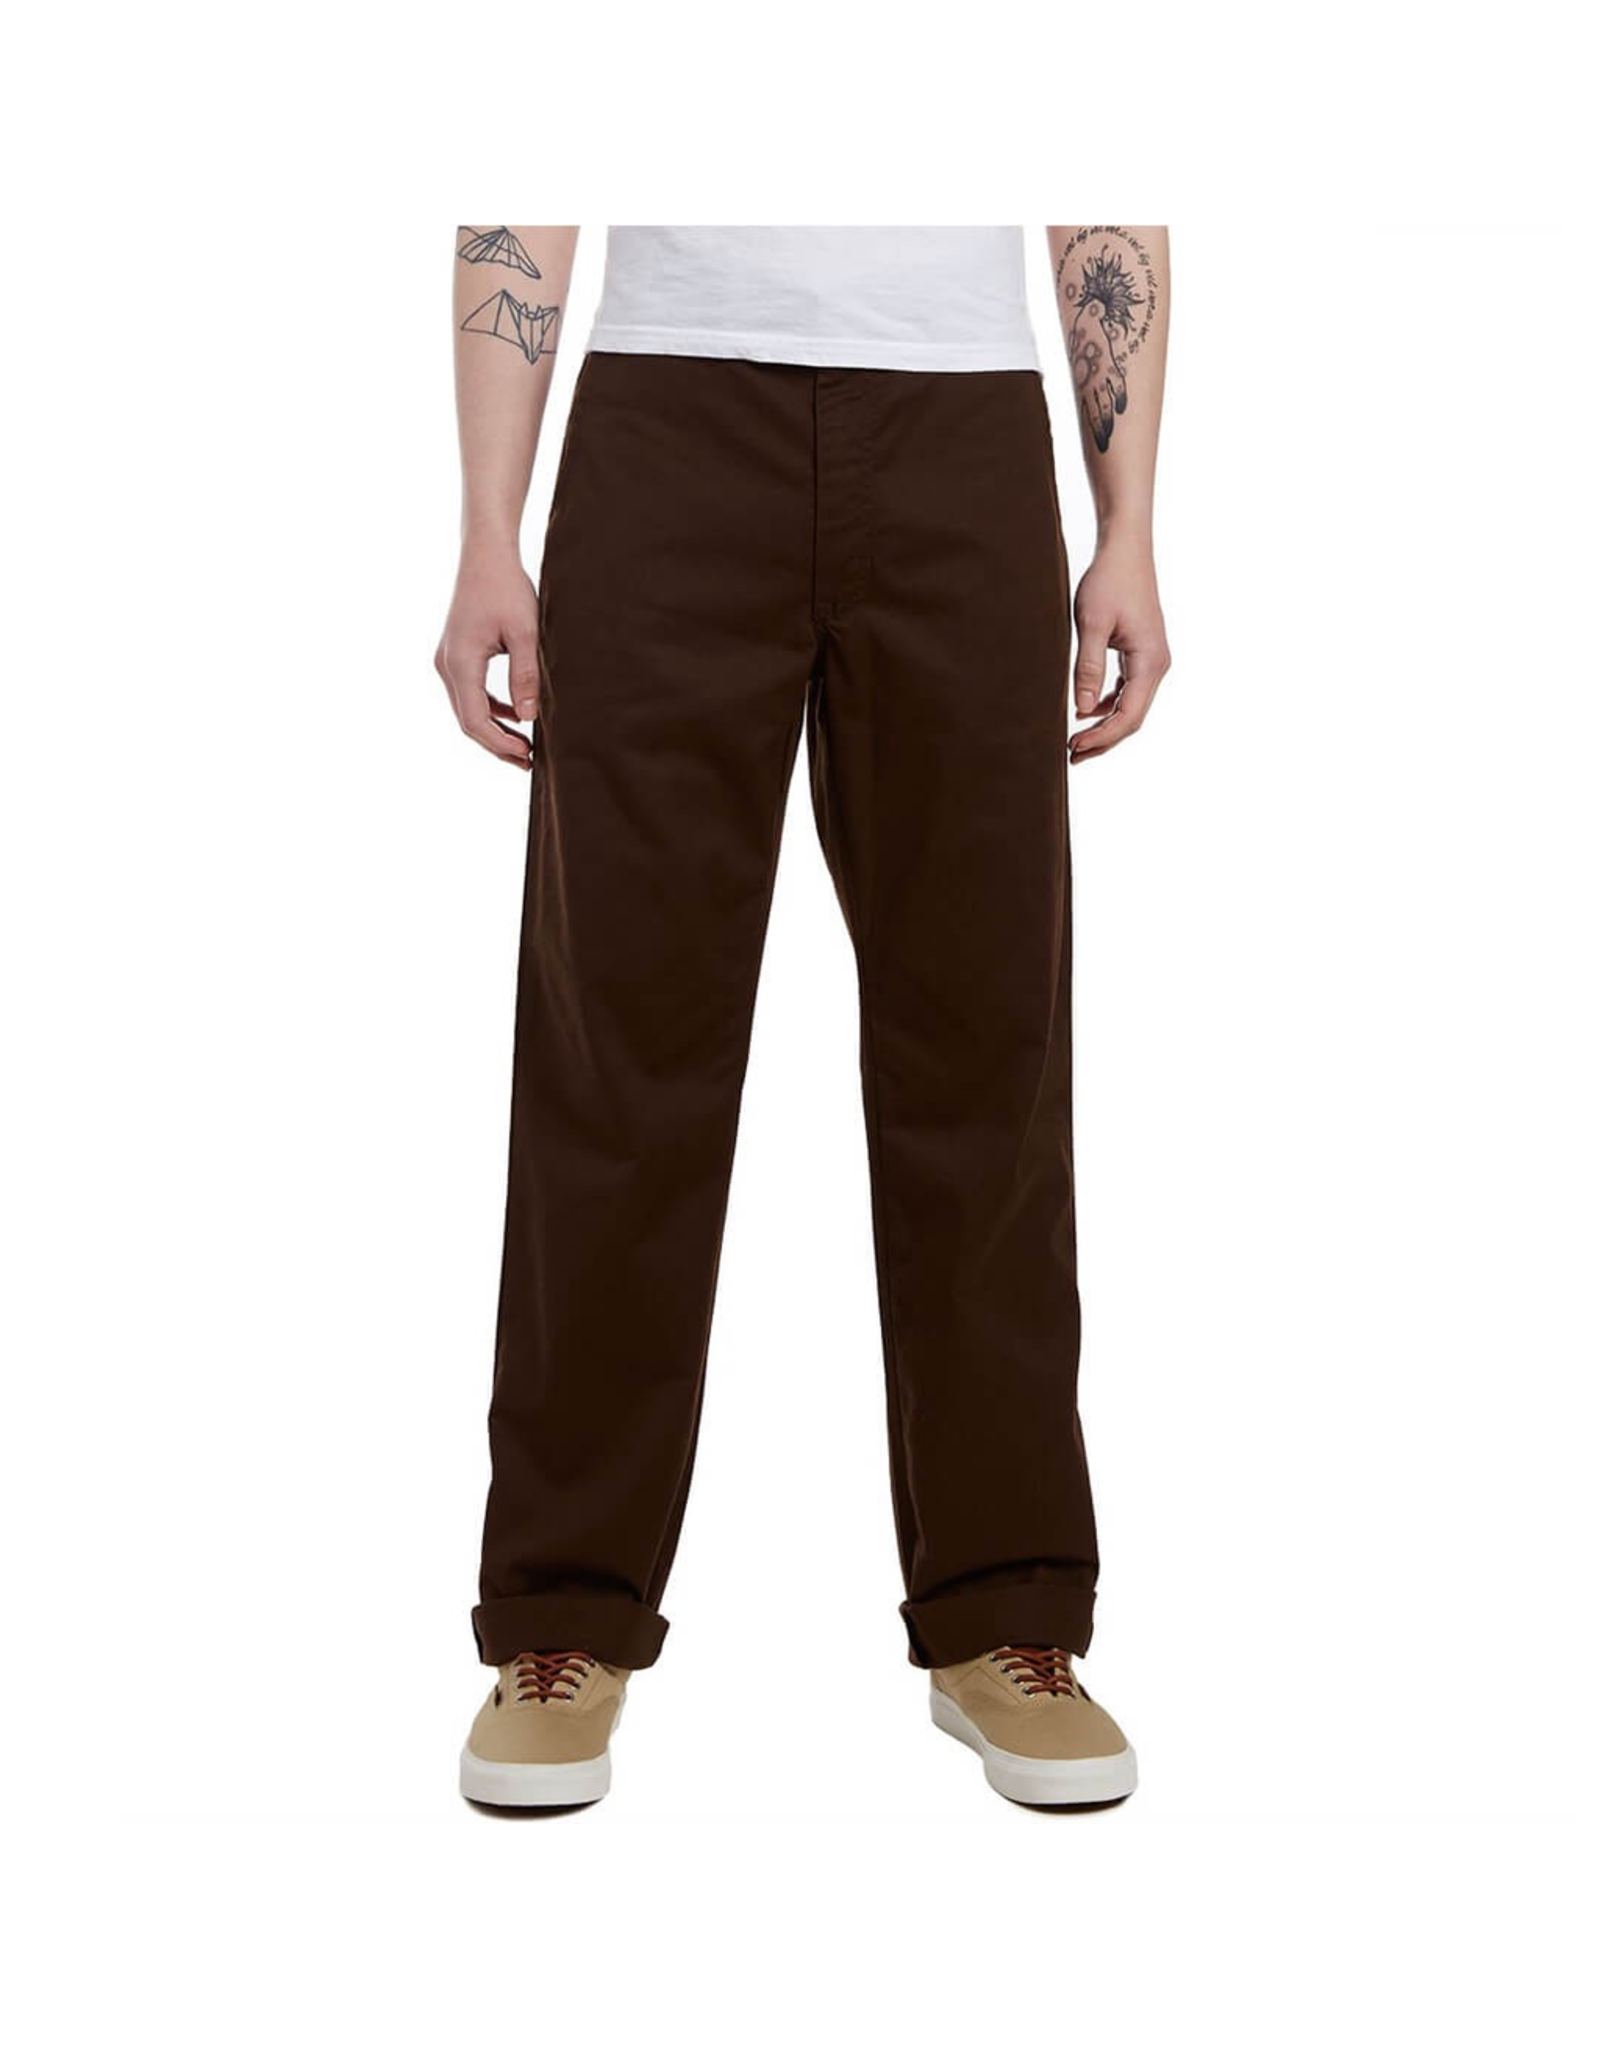 Vans Authentic Chino Stretch Pants